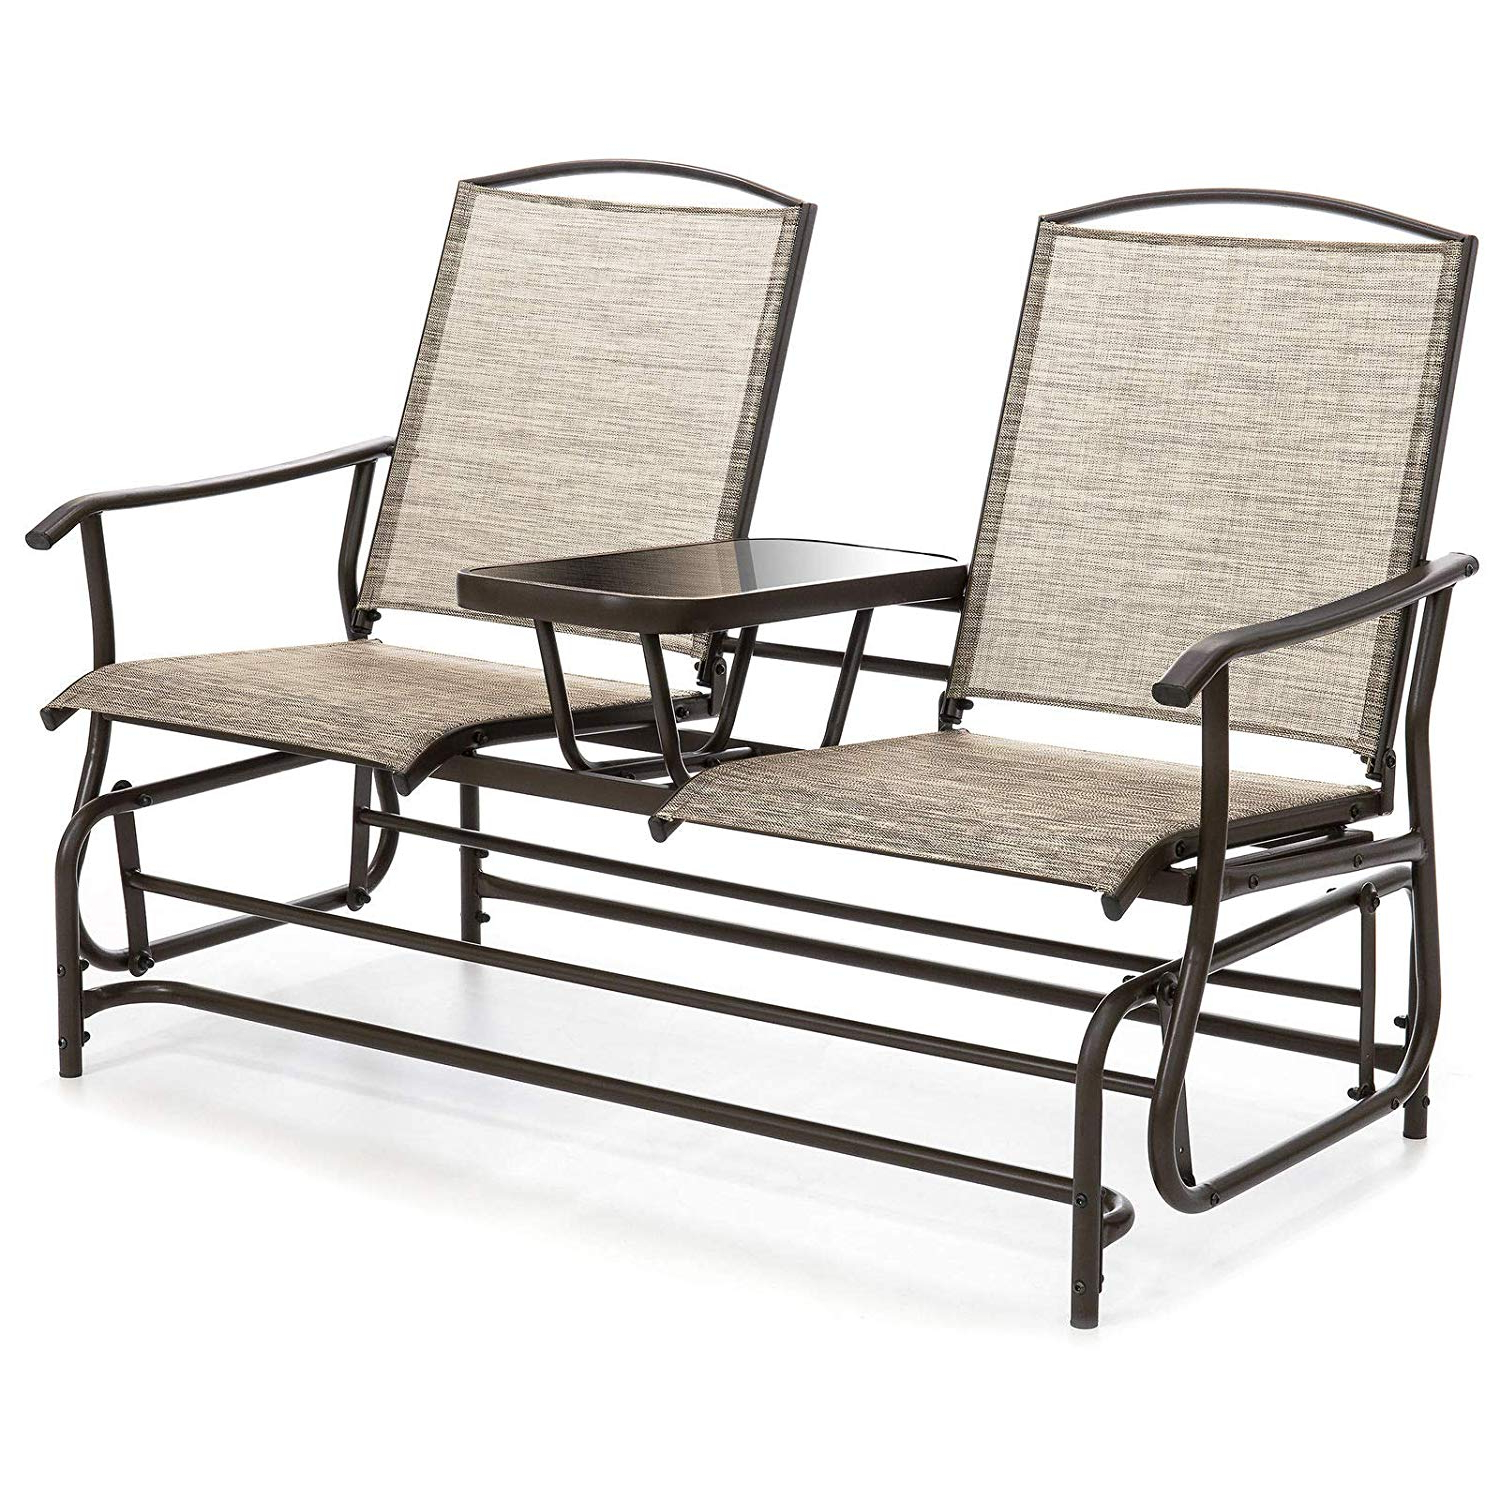 Newest Amazon : 2 Person Outdoor Mesh Fabric Patio Double Intended For Outdoor Fabric Glider Benches (View 6 of 30)